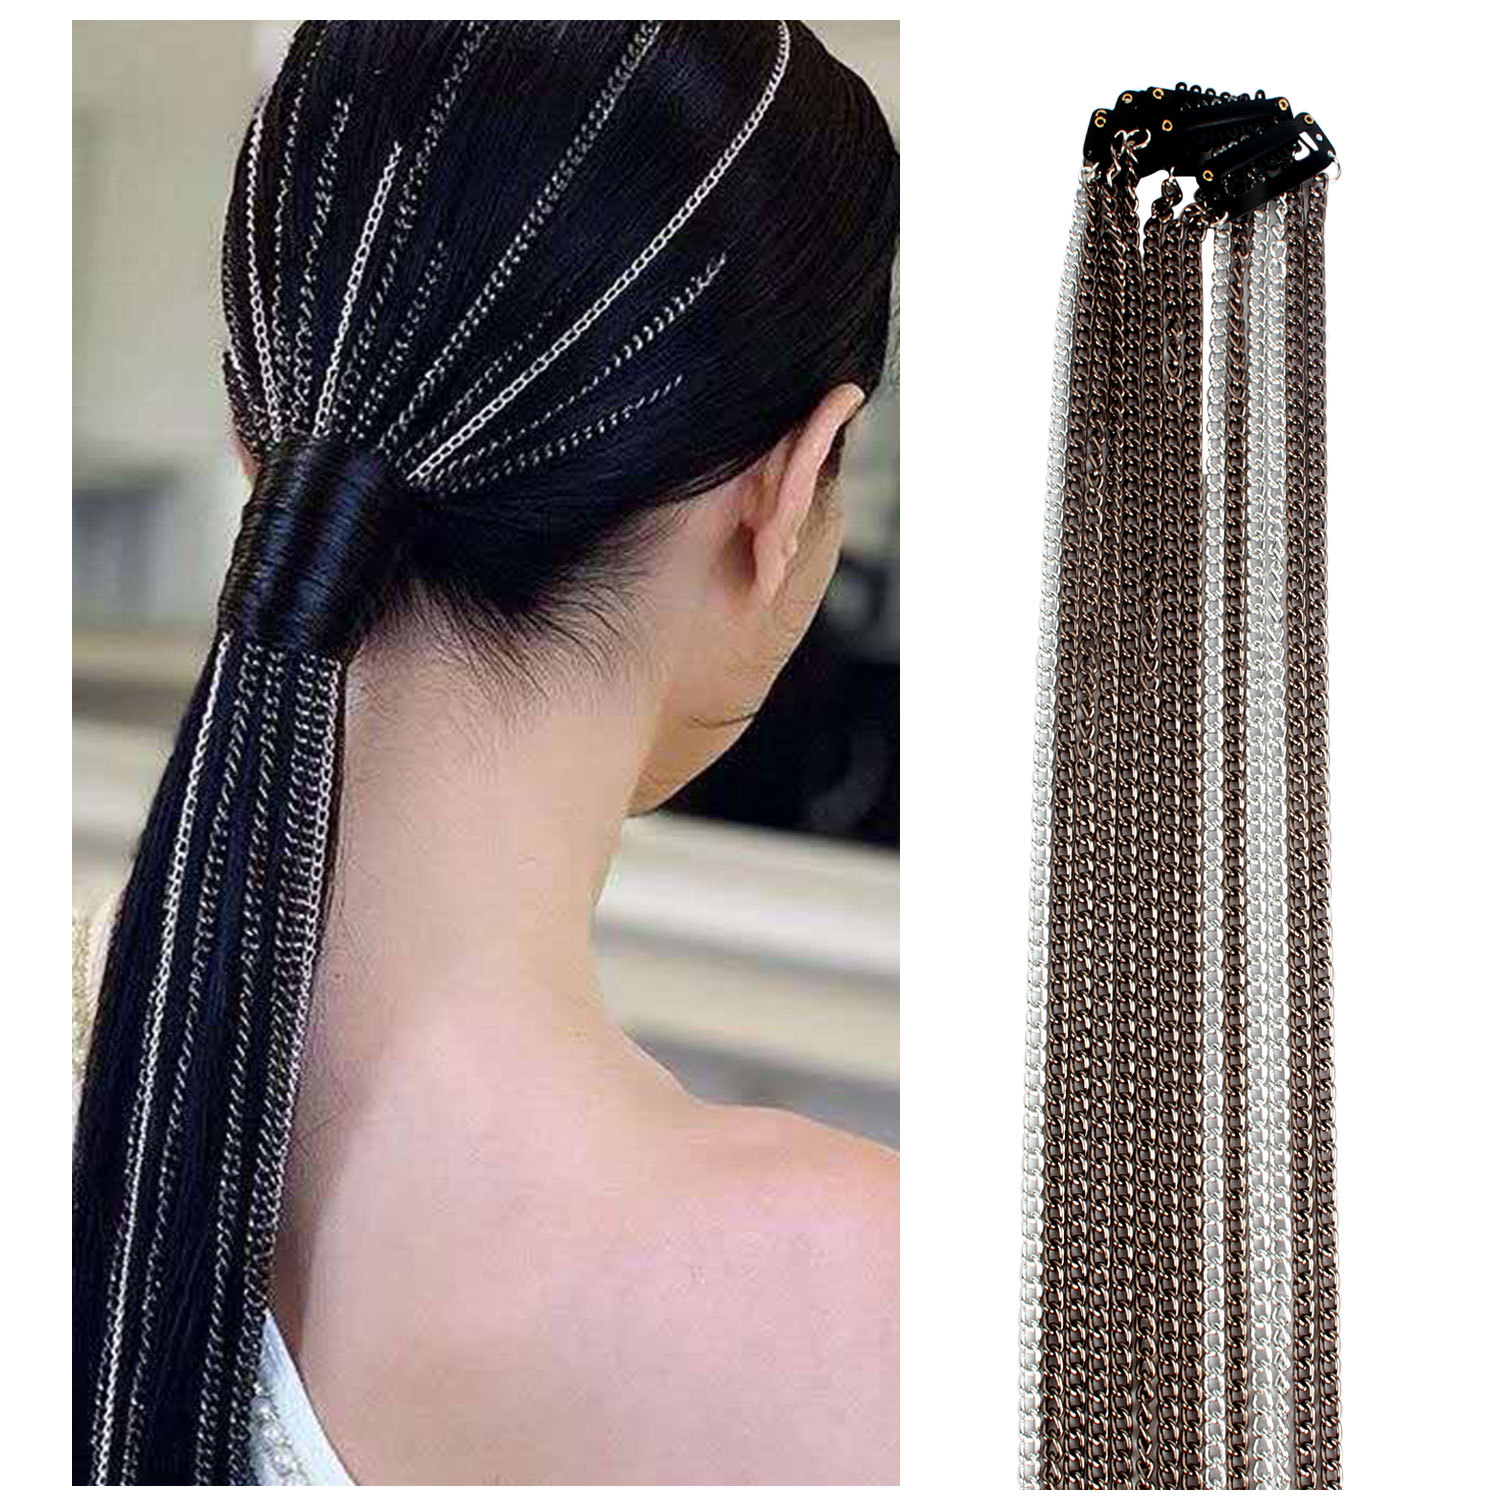 2020 Fashion Hair Chain Hair Clips Tassel Hair Jewelry Accessories Geometric Long Aluminum Chains For Women Creative Headdress